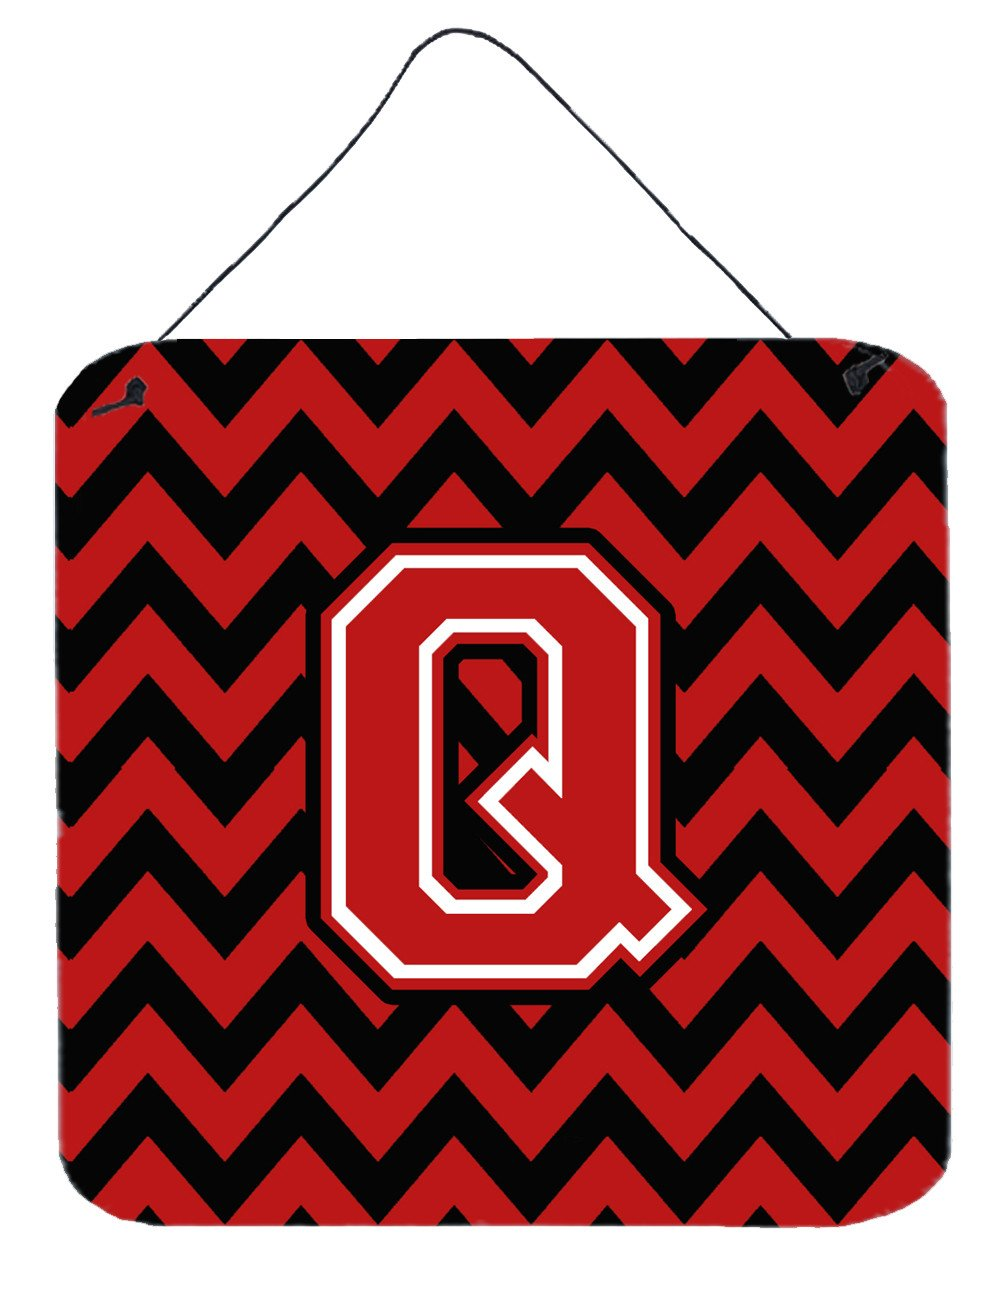 Letter Q Chevron Black and Red   Wall or Door Hanging Prints CJ1047-QDS66 by Caroline's Treasures